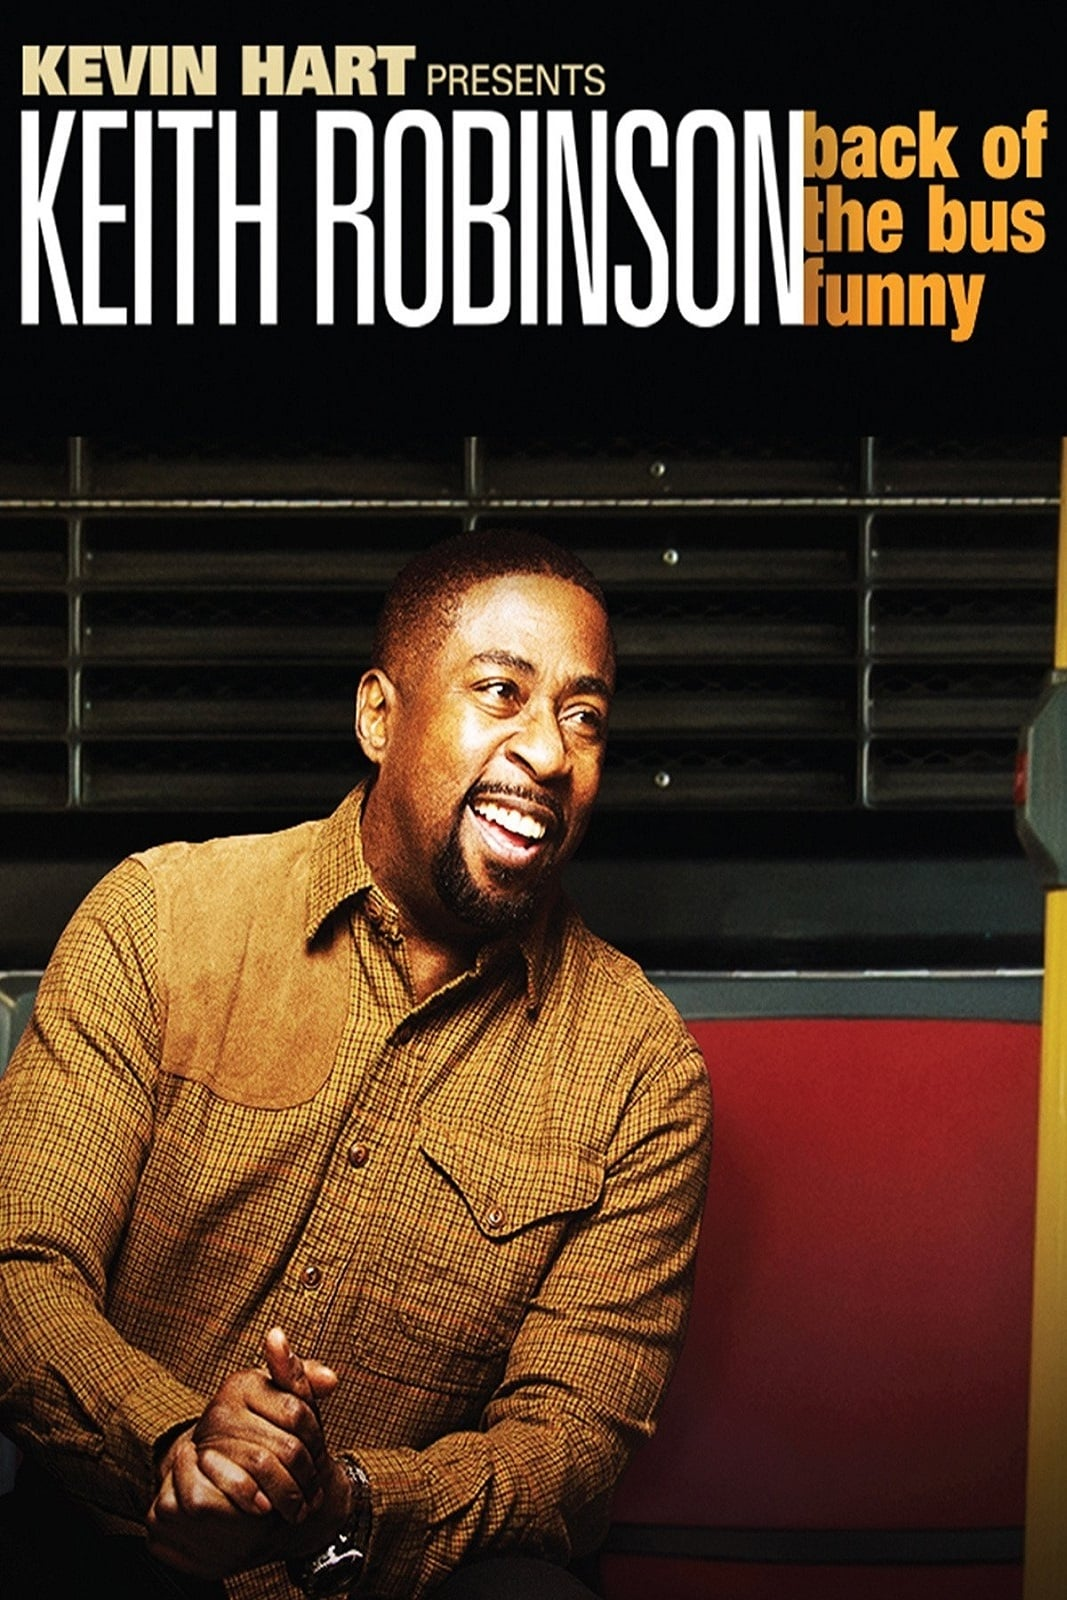 Kevin Hart Presents: Keith Robinson - Back of the Bus Funny on FREECABLE TV